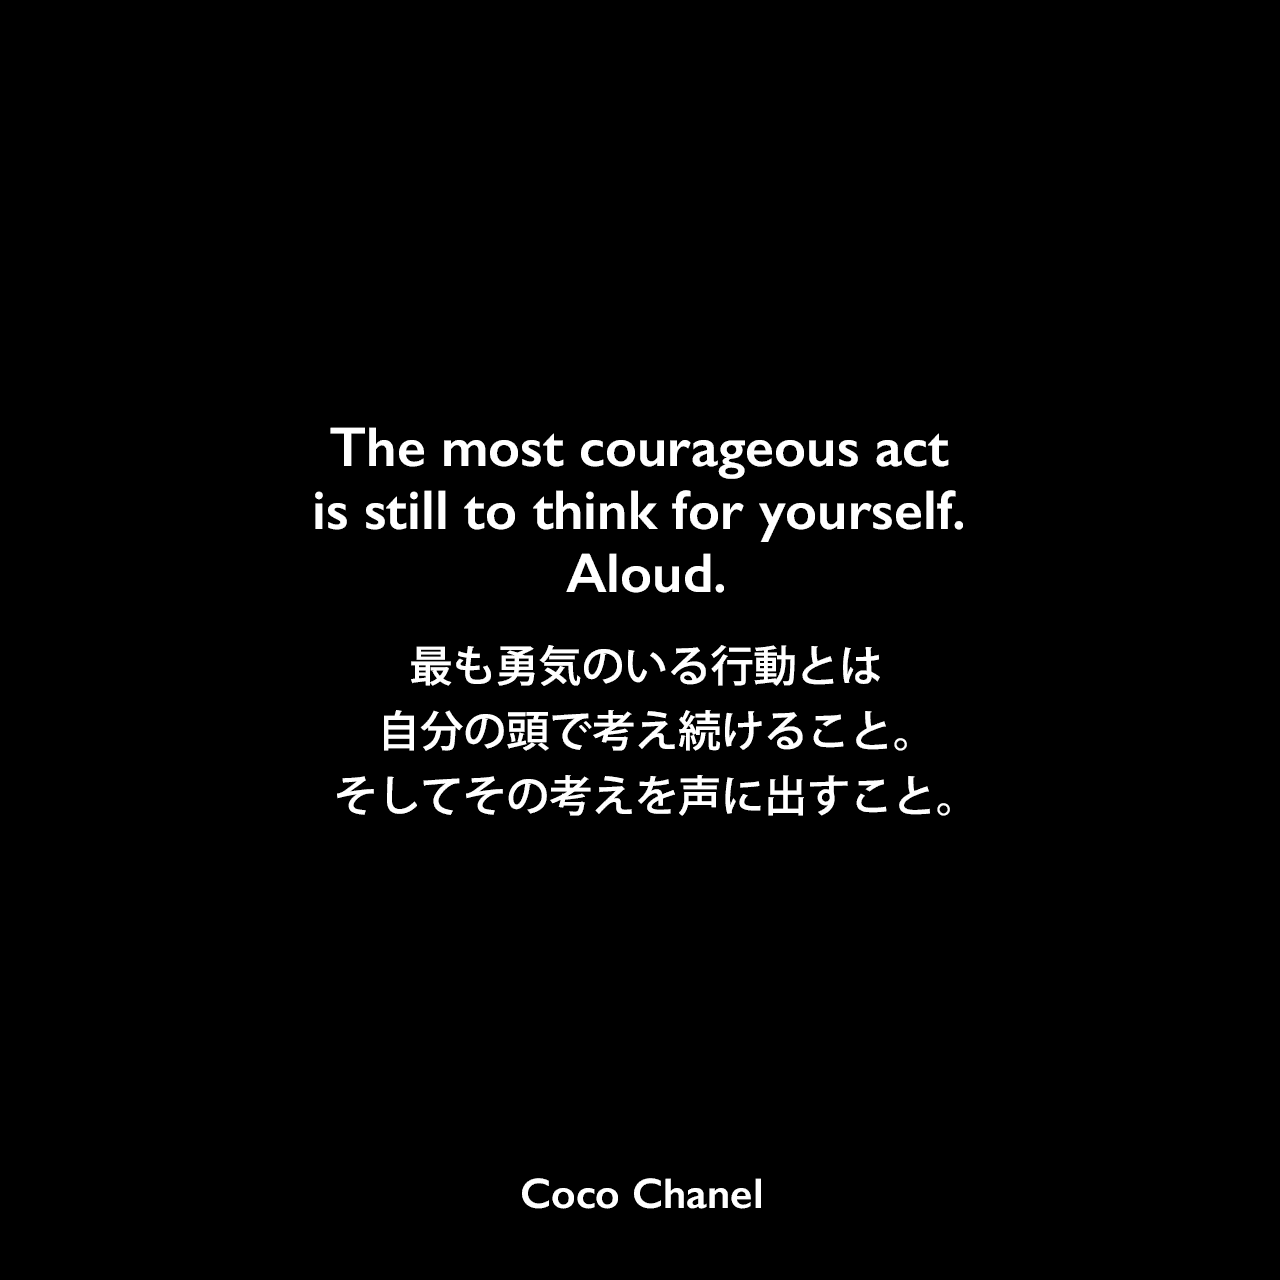 The most courageous act is still to think for yourself. Aloud.最も勇気のいる行動とは、自分の頭で考え続けること。そしてその考えを声に出すこと。- Armand Eisenの本「Believing in Ourselves」よりCoco Chanel